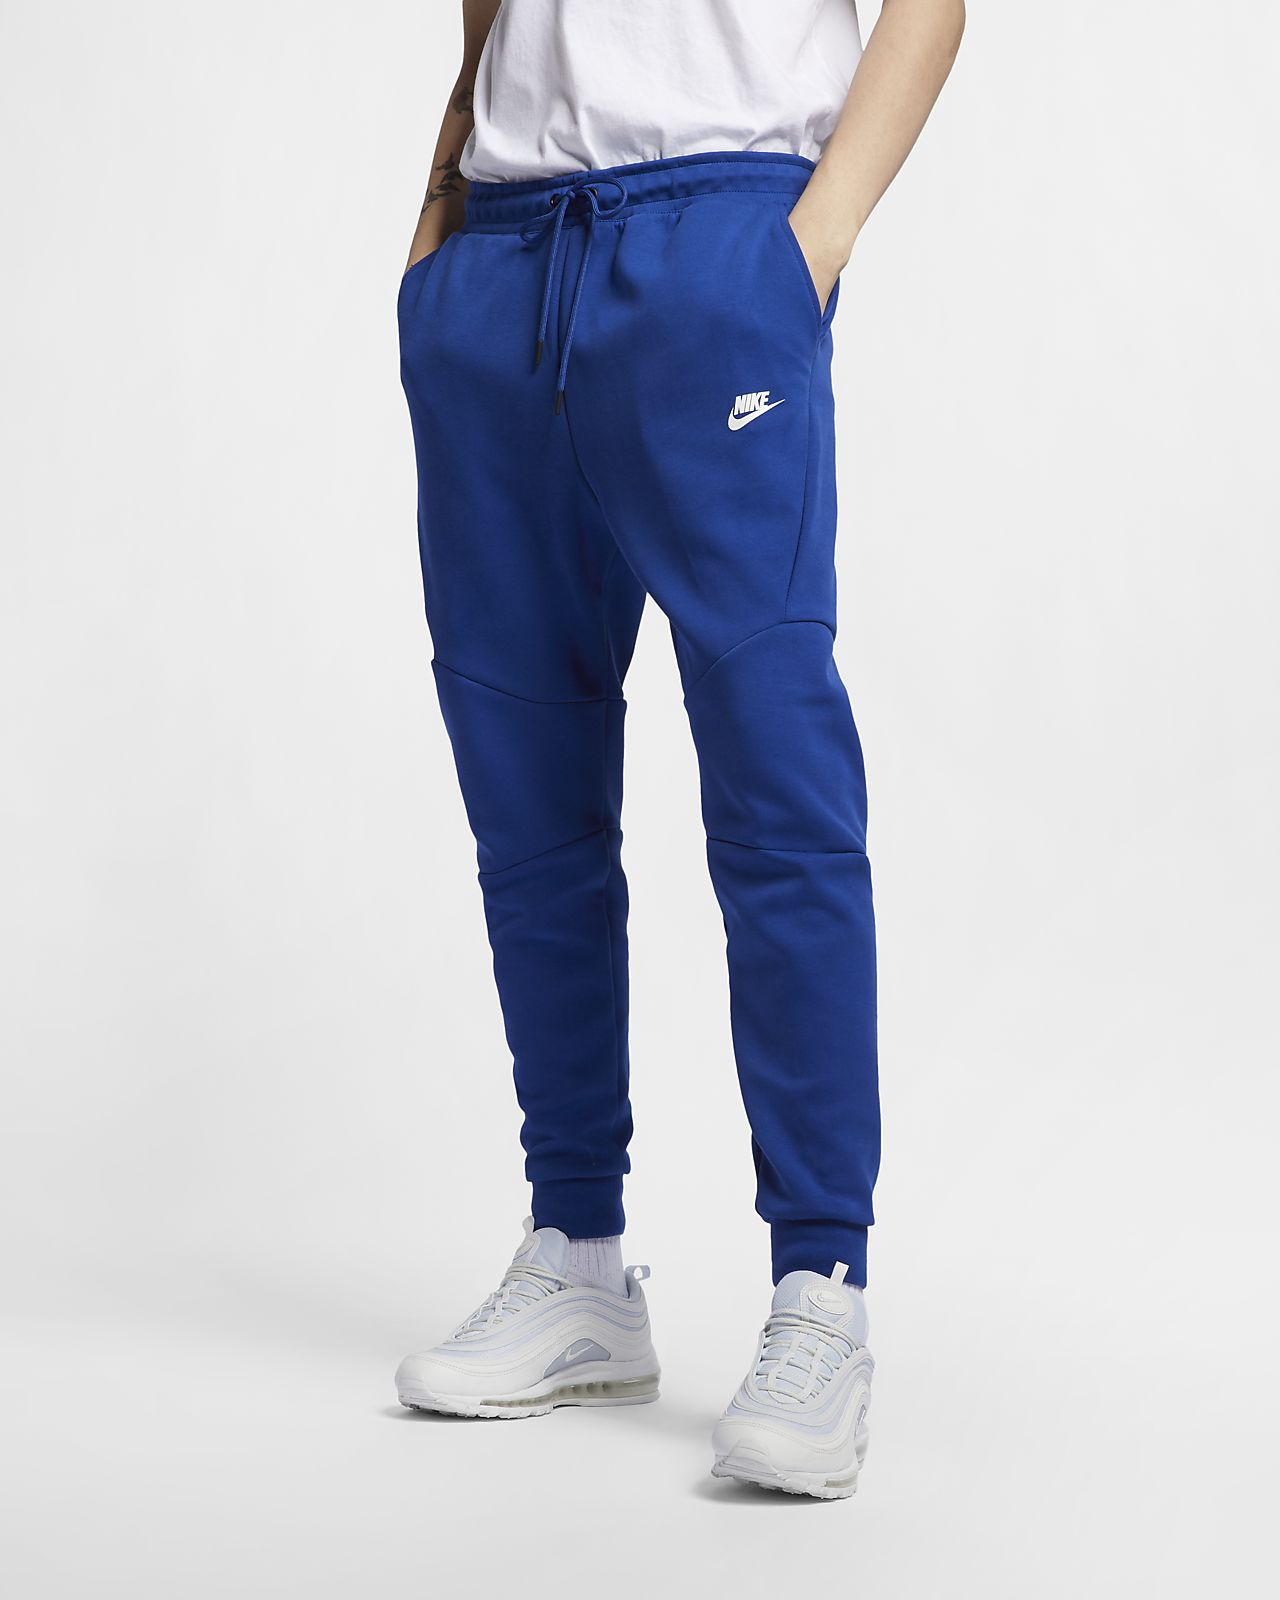 2e6bb61df3a Nike Sportswear Tech Fleece Joggingbroek heren. Nike.com NL